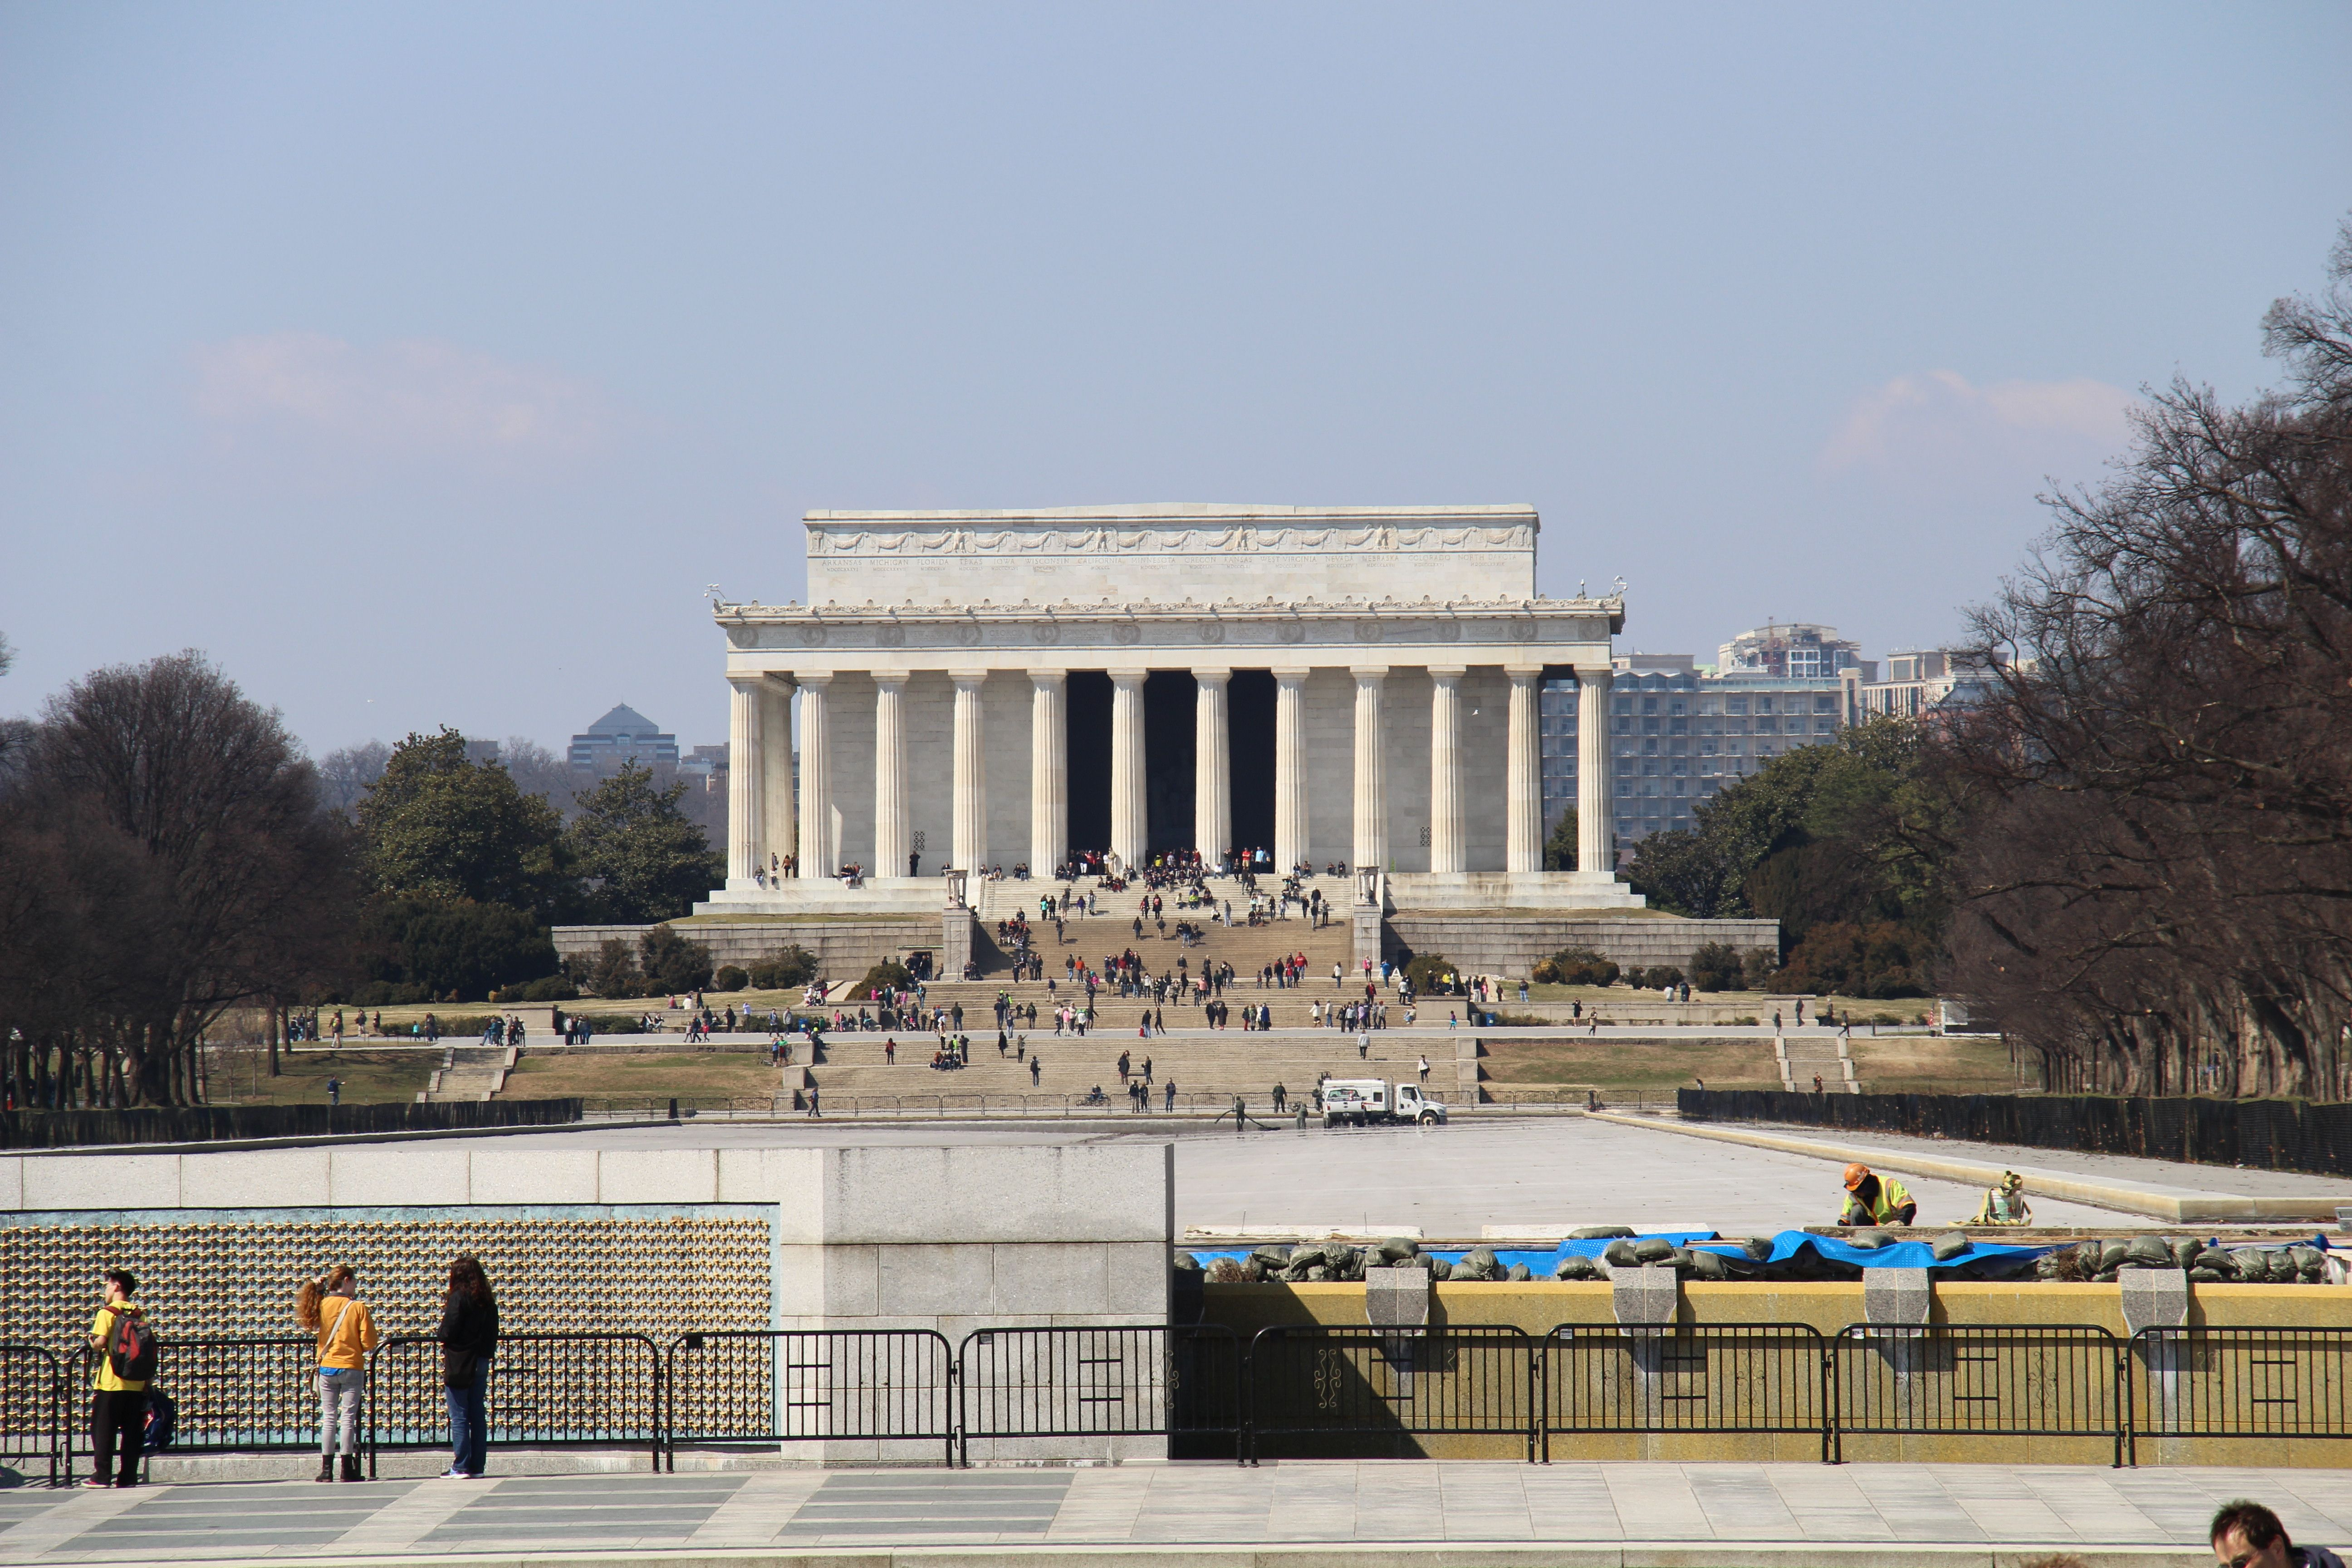 This is the view of the Lincoln Memorial from the WWII Memorial. It's not that far, you can join both buildings in only 10 minutes walk.